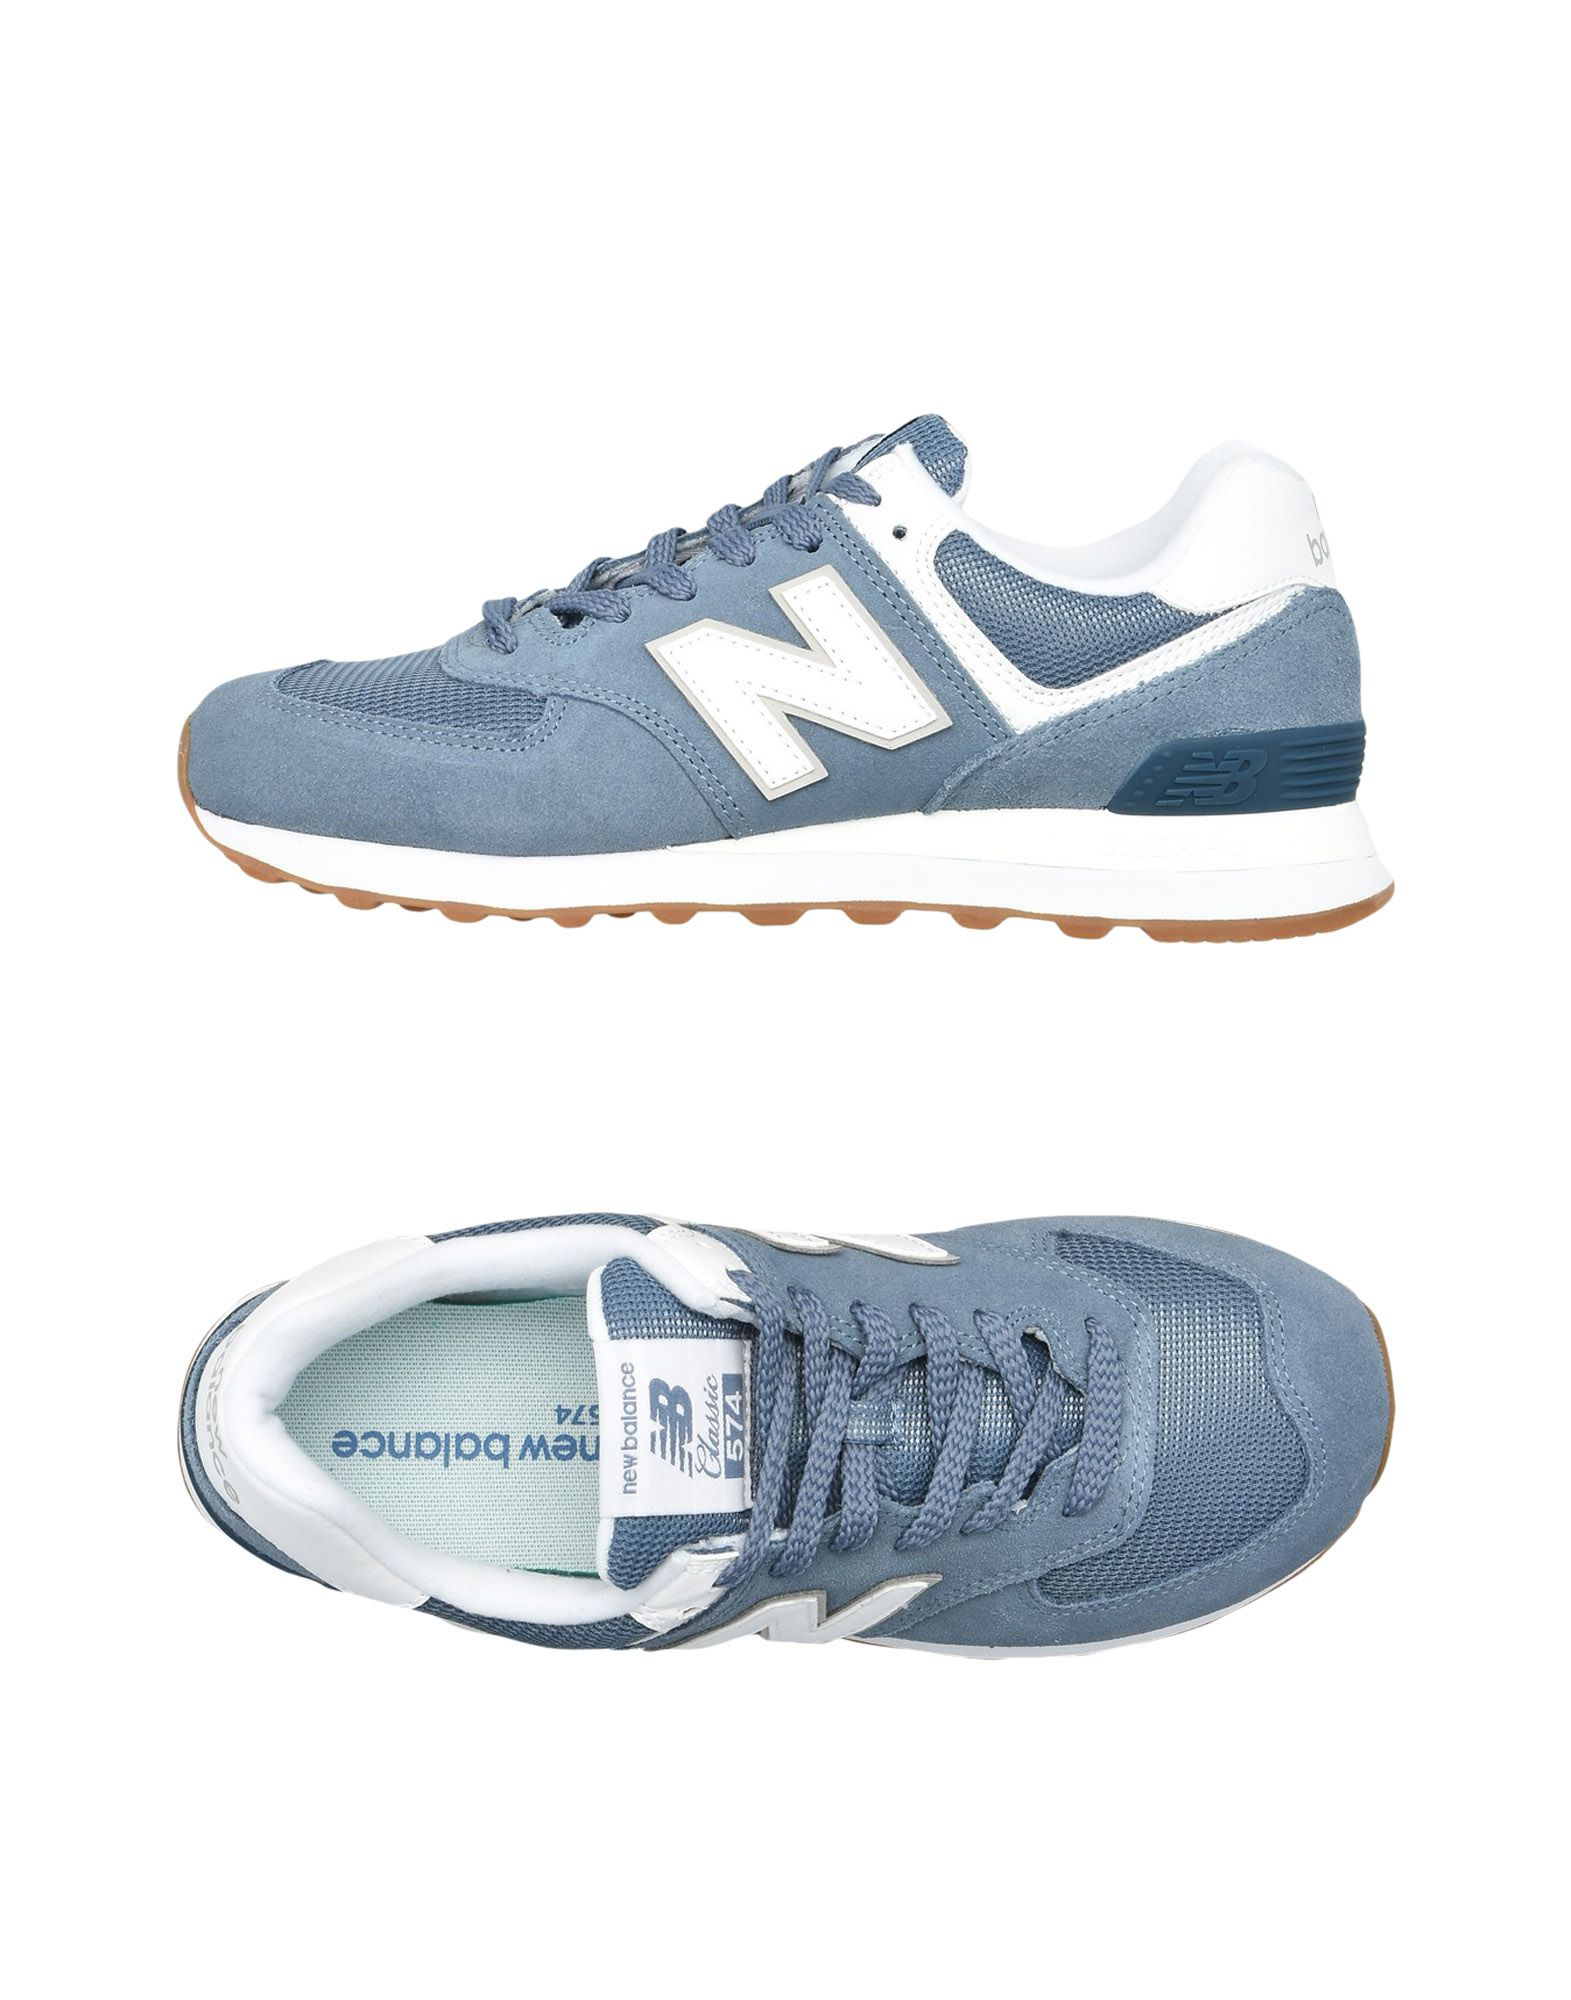 New Balance 574 Suede Sneakers Mesh Core Plus - Sneakers Suede - Women New Balance Sneakers online on  Canada - 11497540EX adb775